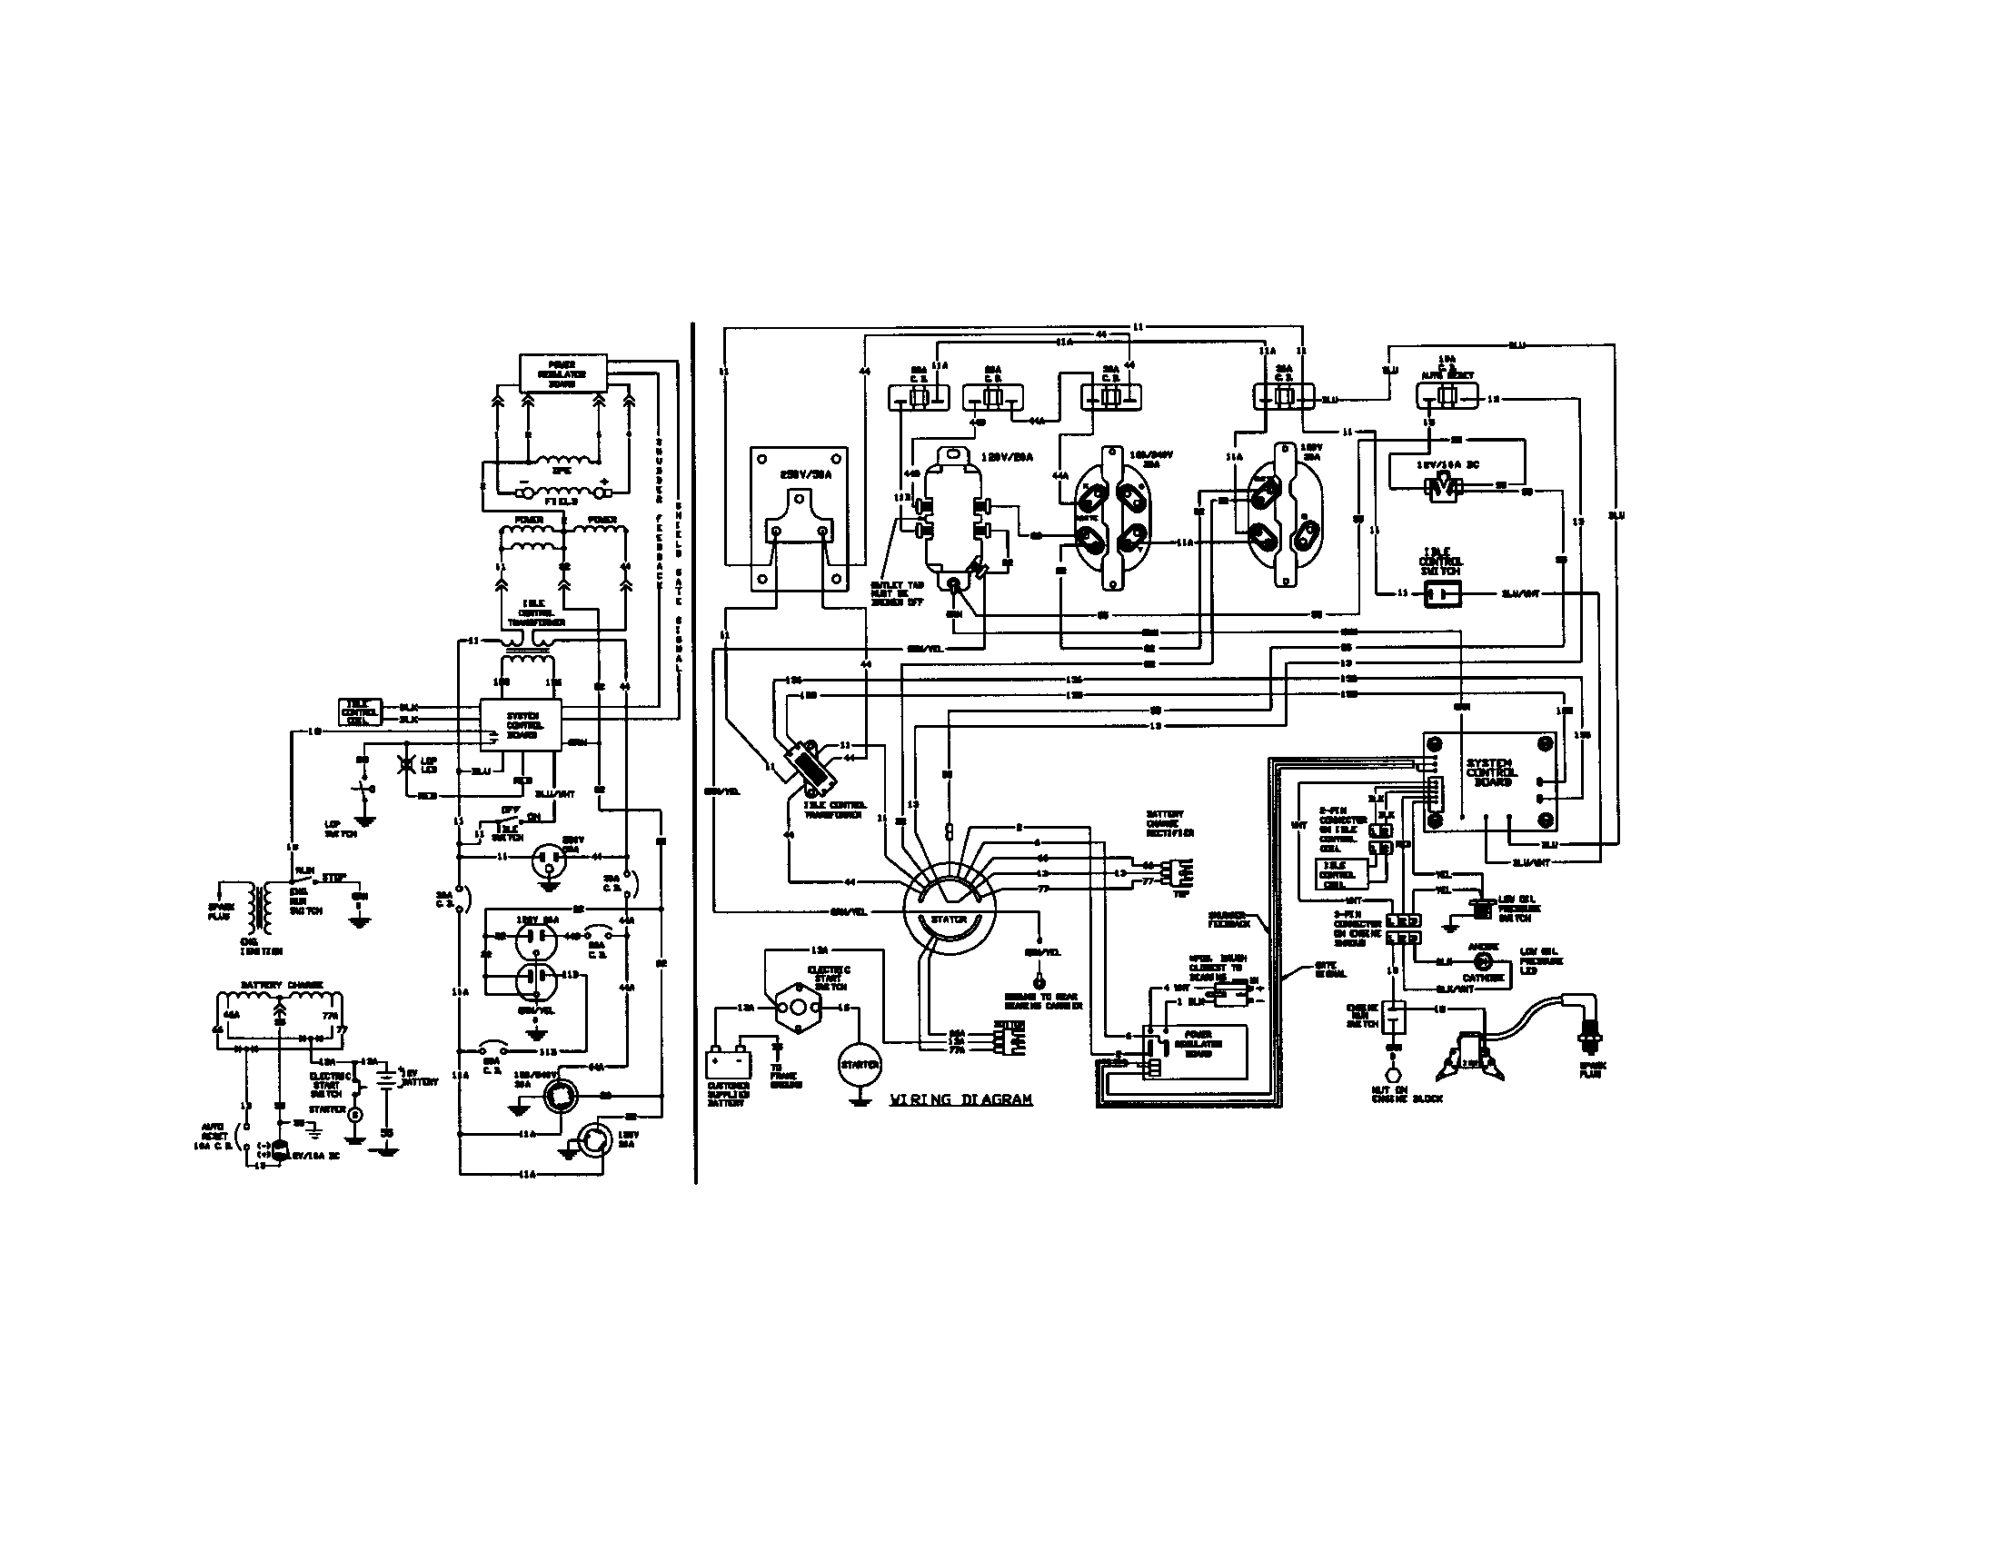 hight resolution of craftsman 580327181 wiring diagram diagram